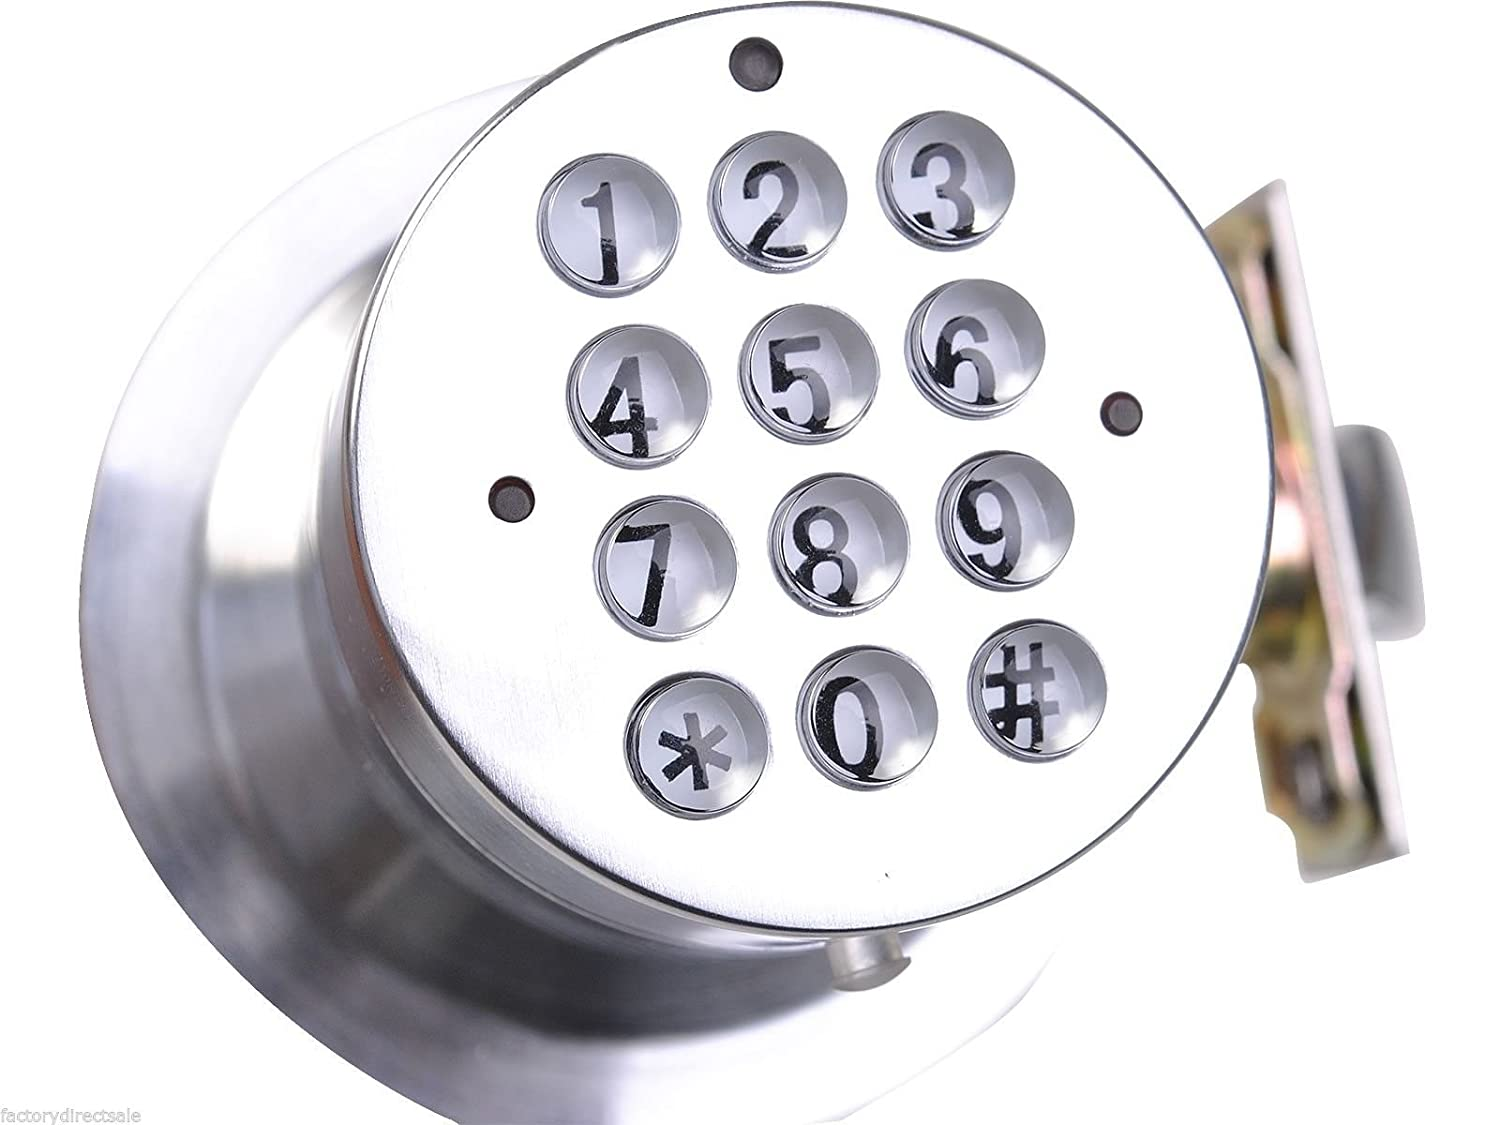 Amazon.com: Safstar Keyless Electronic Keypad Door Lock Programable Code  Entry Security Safety Locker: Electronics